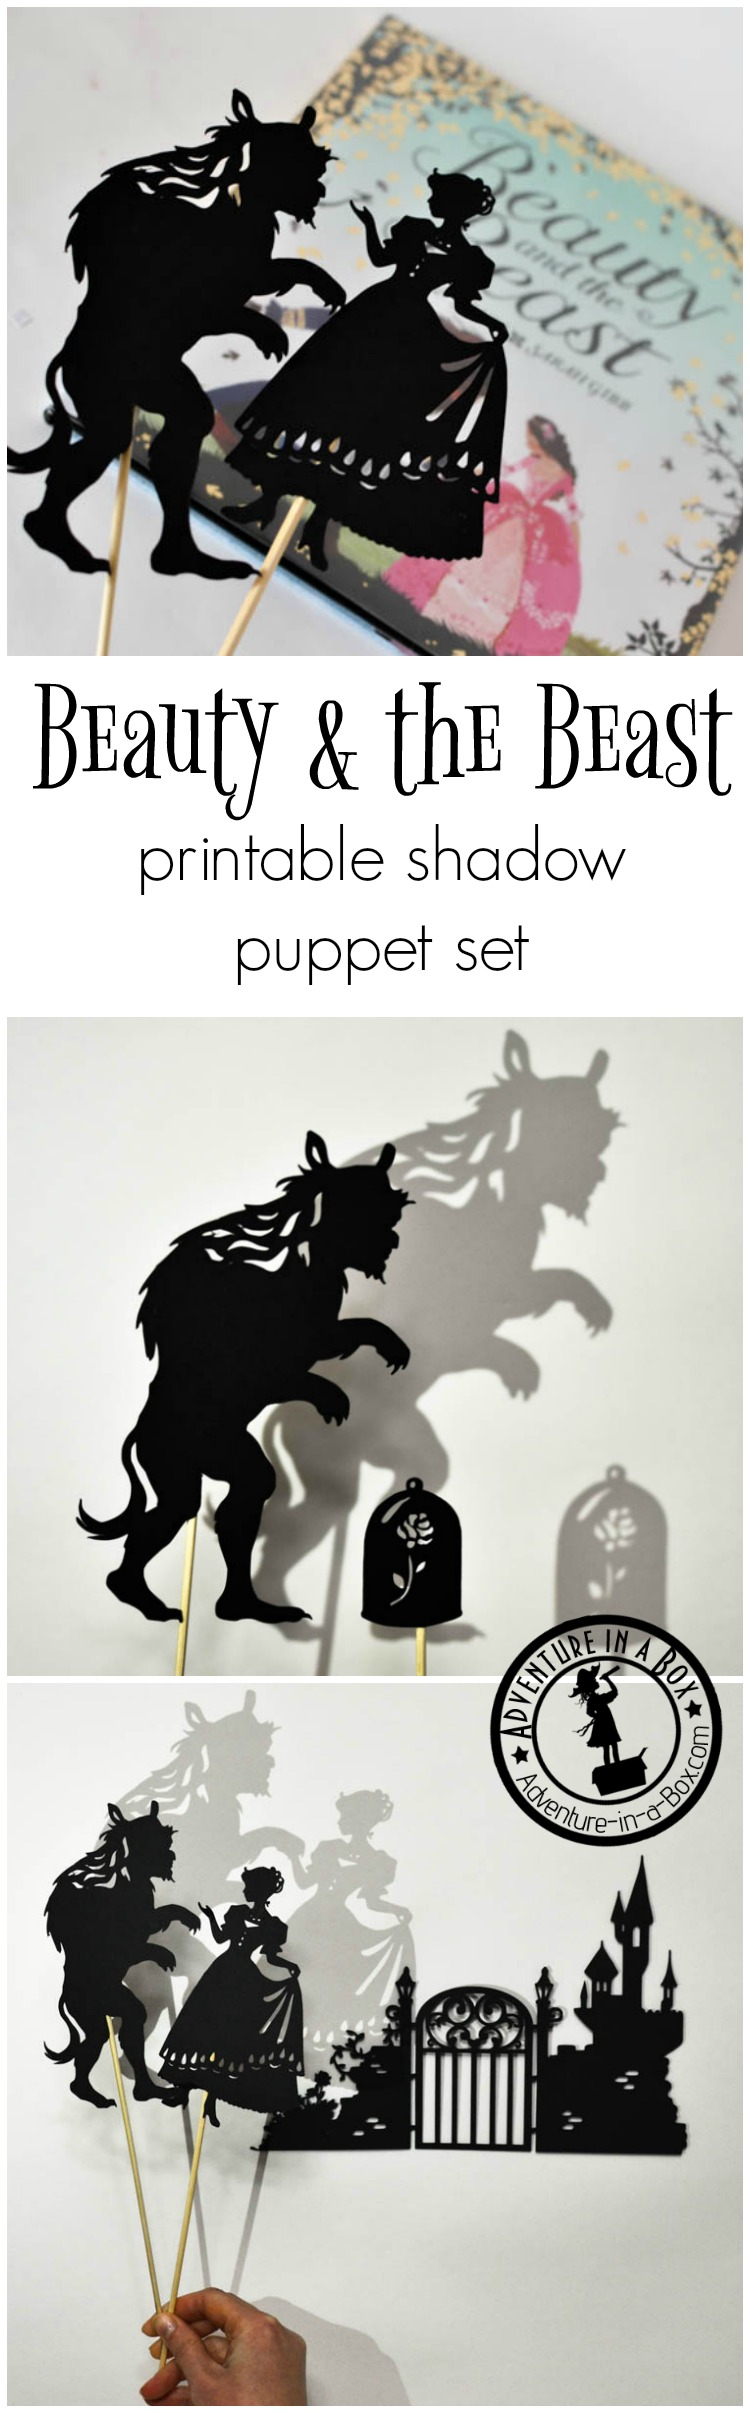 Inspired by the Beauty and the Beast fairy-tale, these shadow puppets will let the kids tell their version of the story. Printable silhouettes will work great for Beauty and the Beast party, lesson or craft!